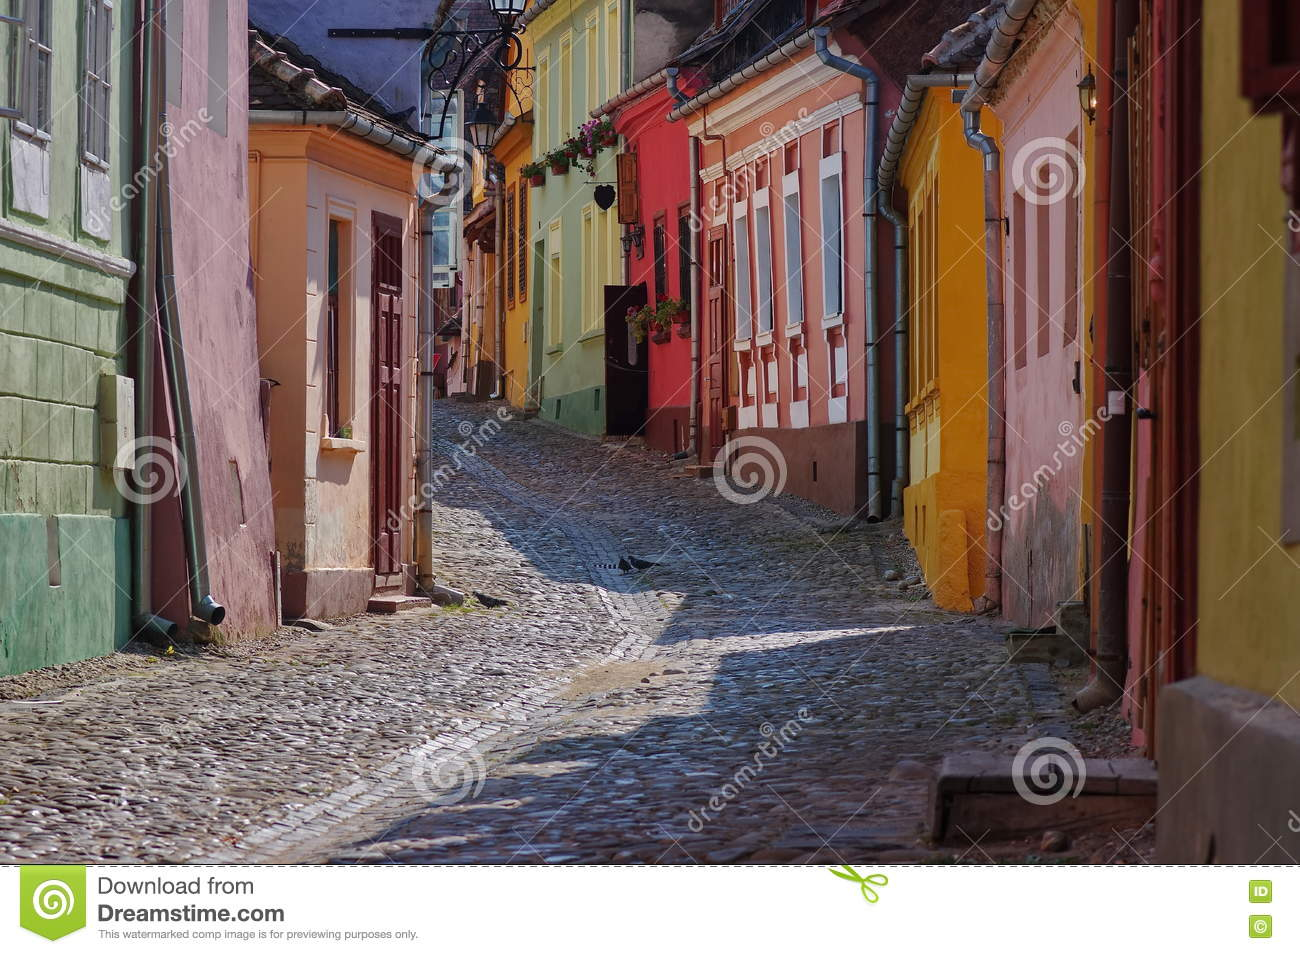 Medieval colorful street in Sighisoara, Romania